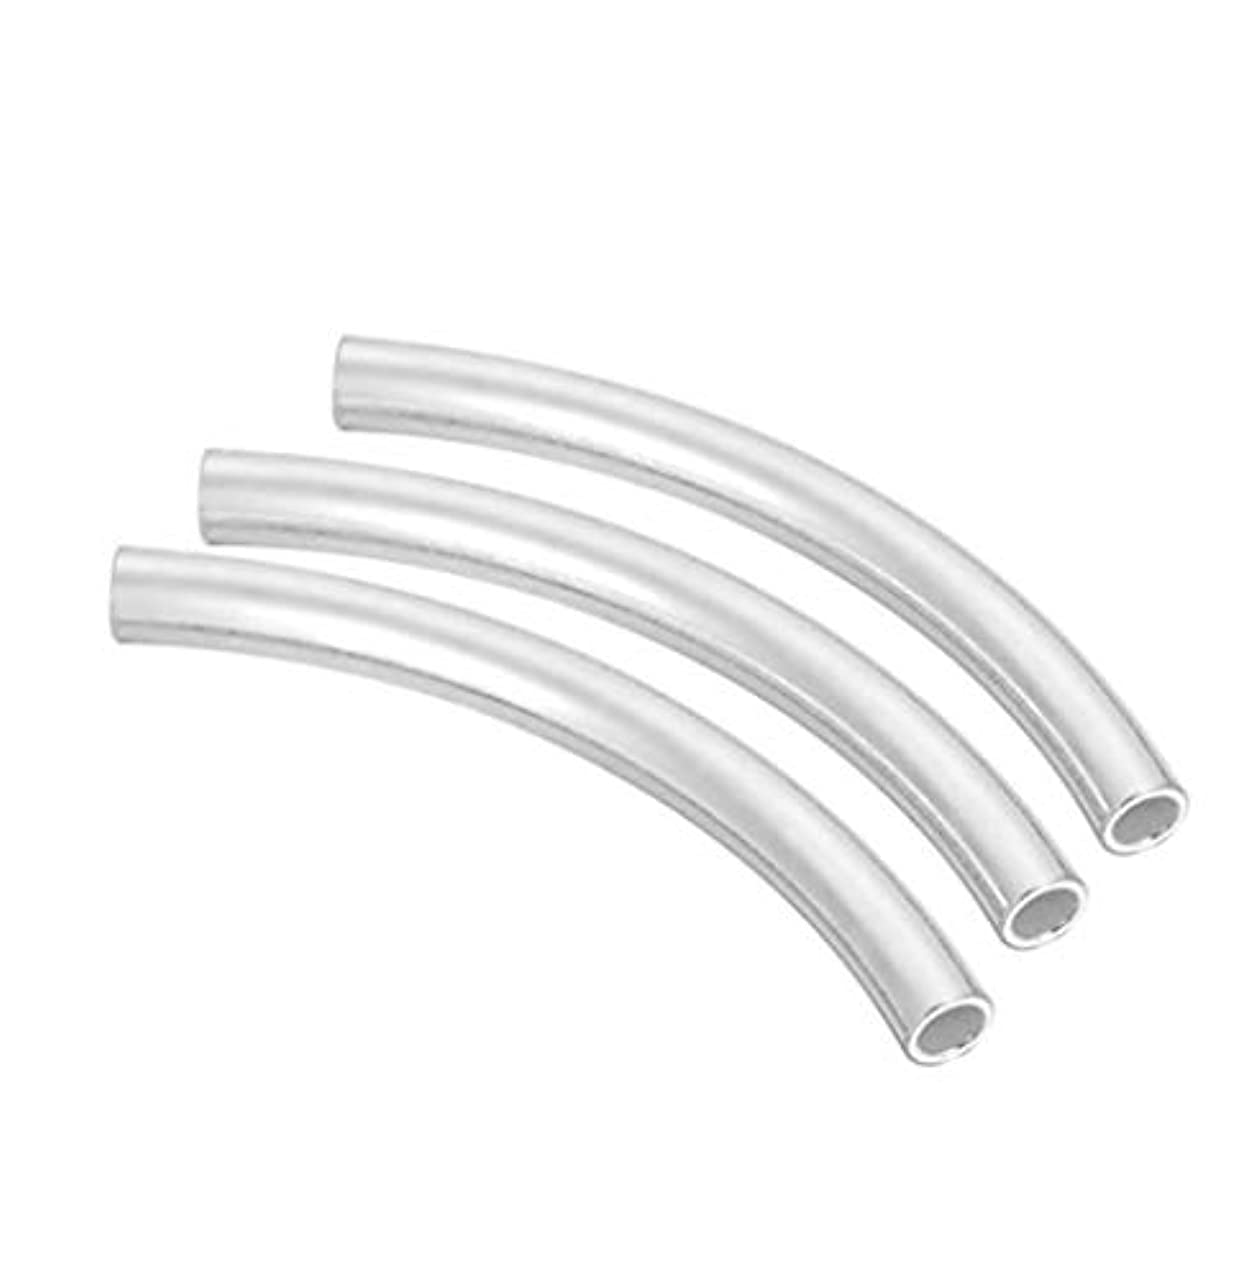 20pcs Sterling Silver Sleek Curved Noodle Tube Connector Beads 20mm x 2mm (~1.6mm Hole) SS214-AA